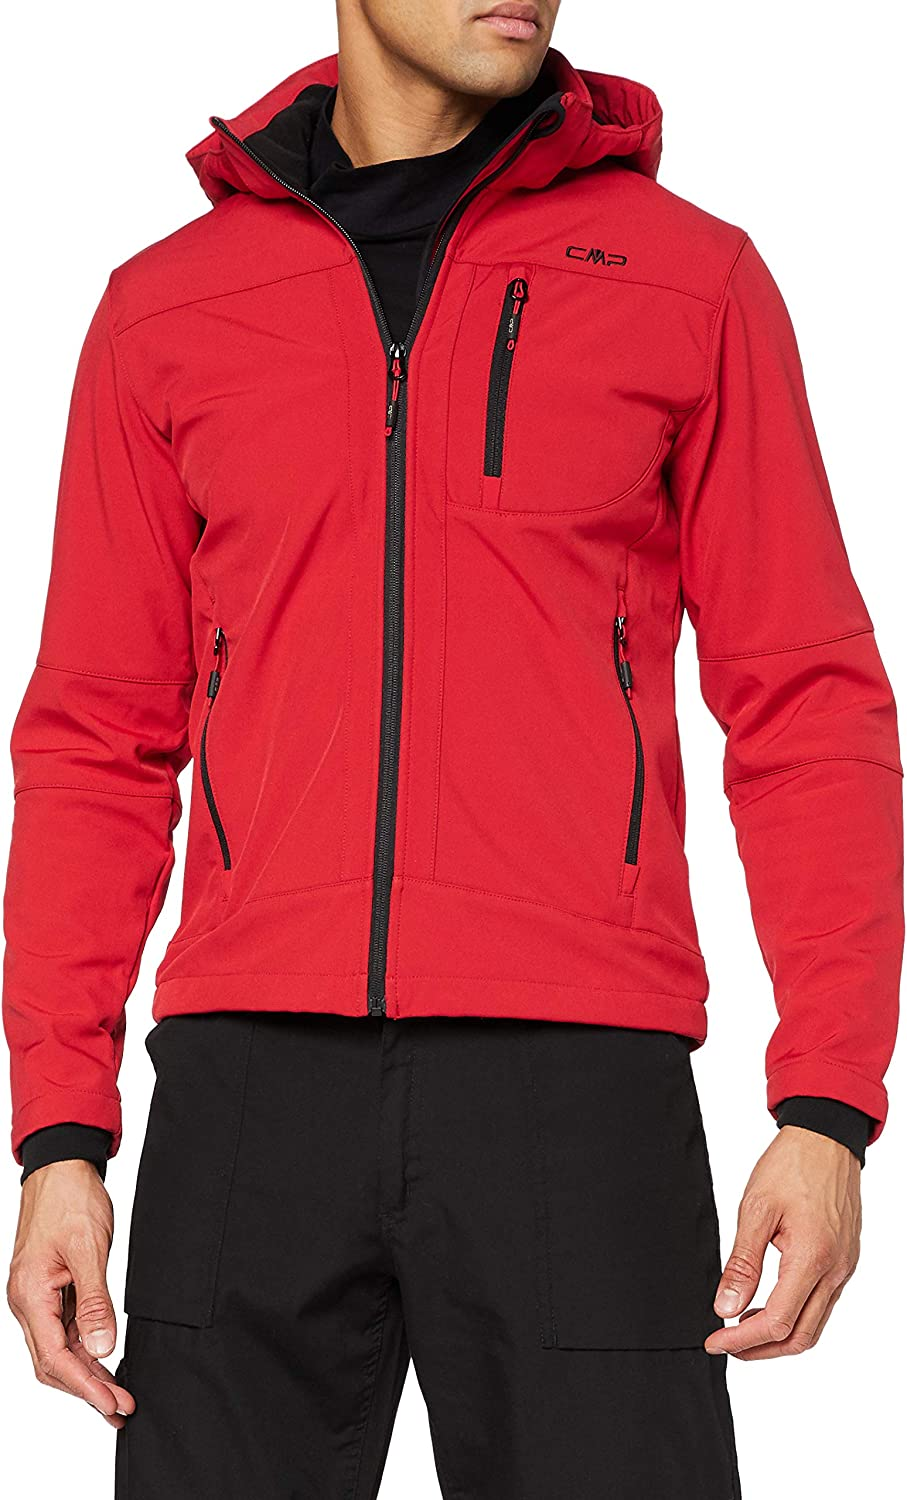 CMP Softshell Jacket With Climaprotect Wp 7.000 Technology Chaqueta Hombre